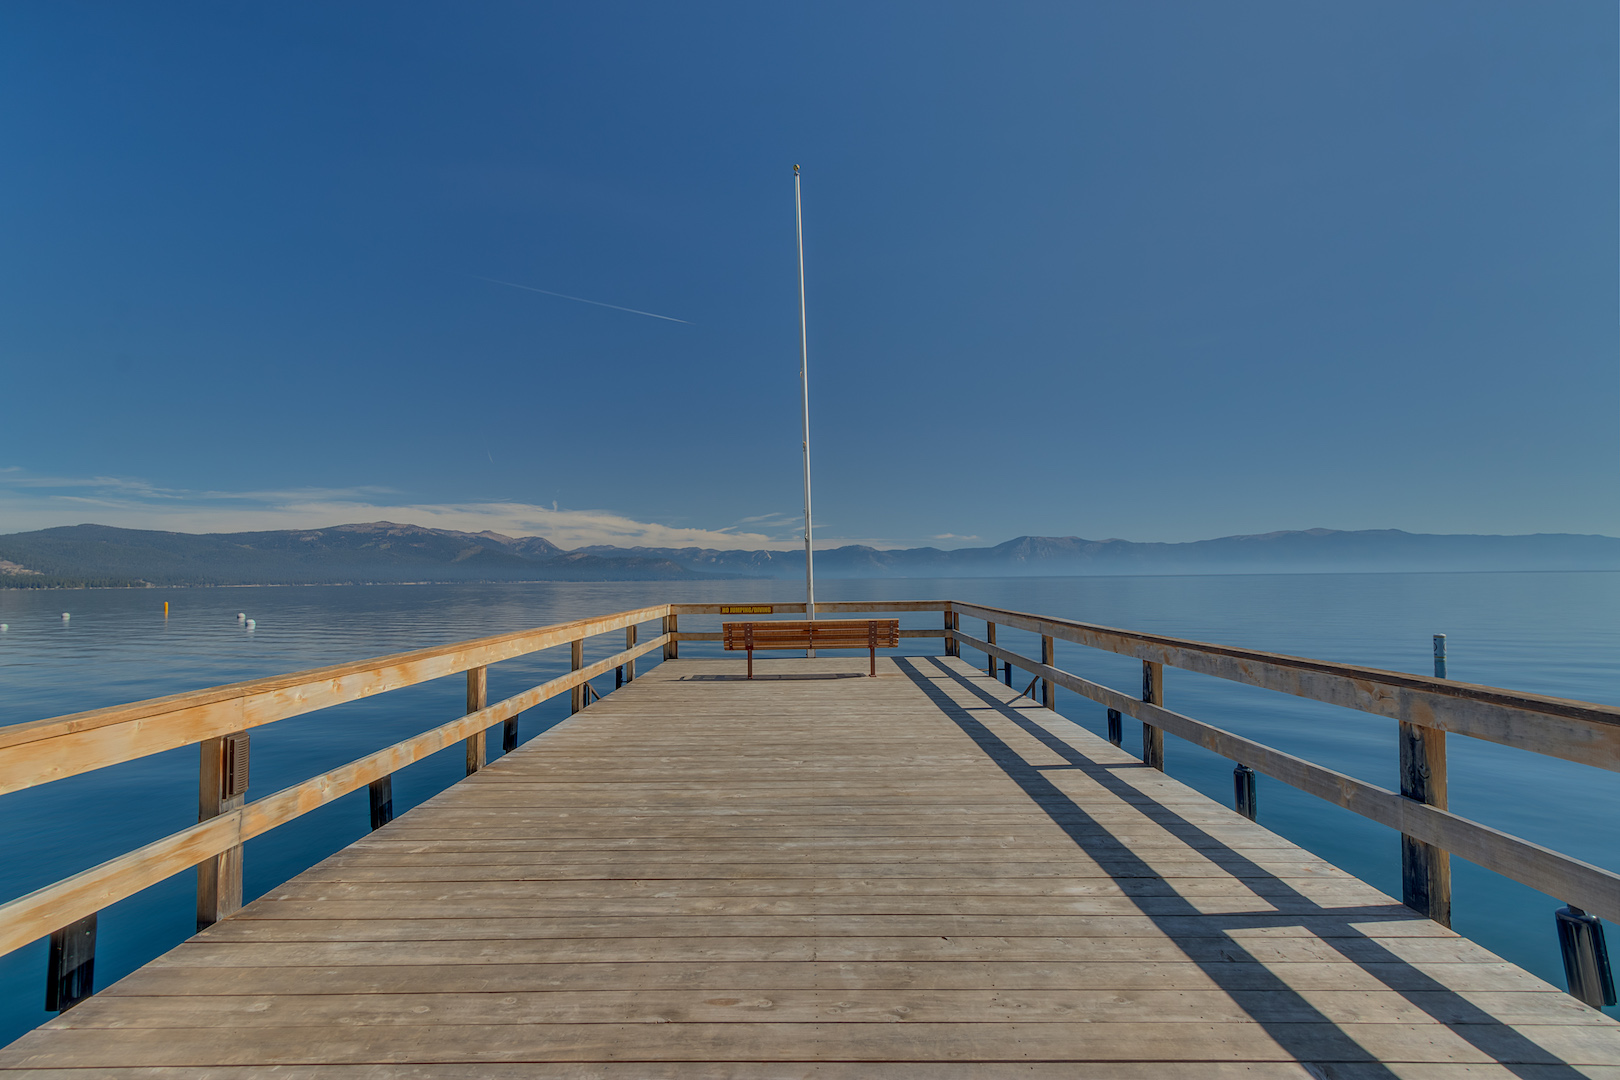 Relax at the end of the dock!